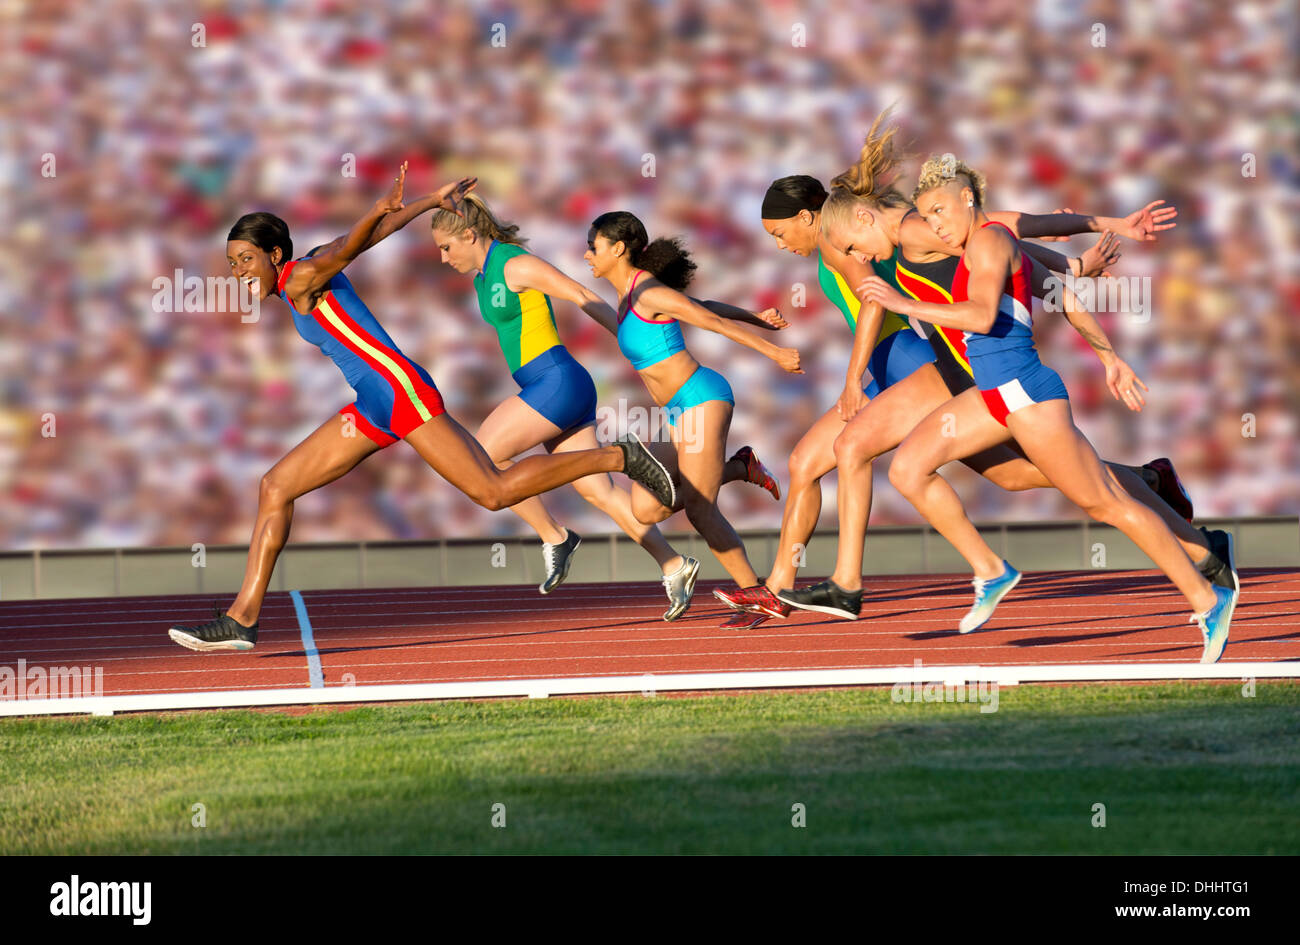 Runners at finish line - Stock Image